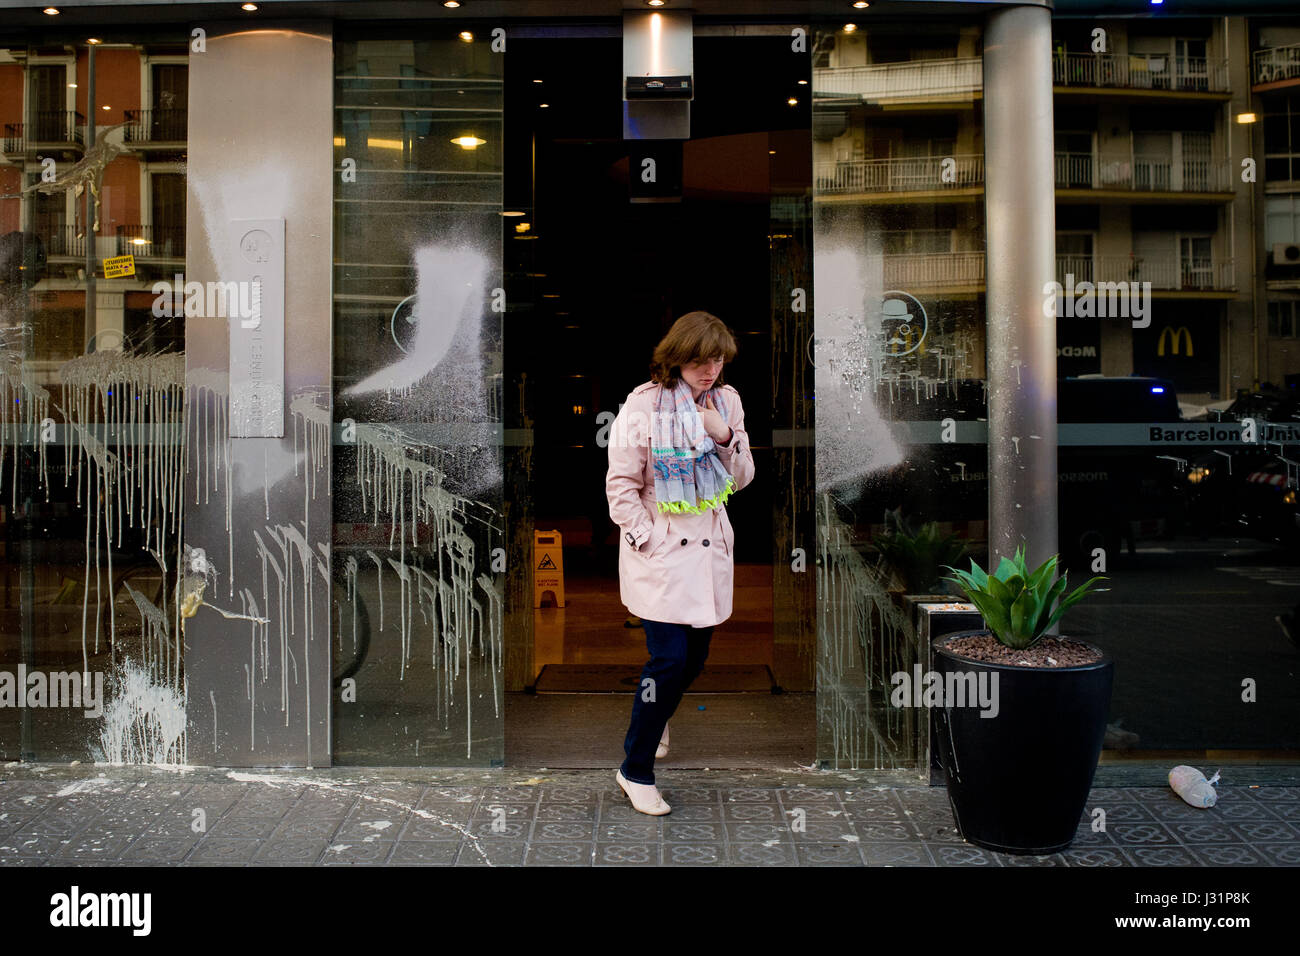 Barcelona, Spain. 01st May, 2017. May 1, 2017 - Barcelona, Catalonia, Spain - A woman leaves a vandalized hotel - Stock Image